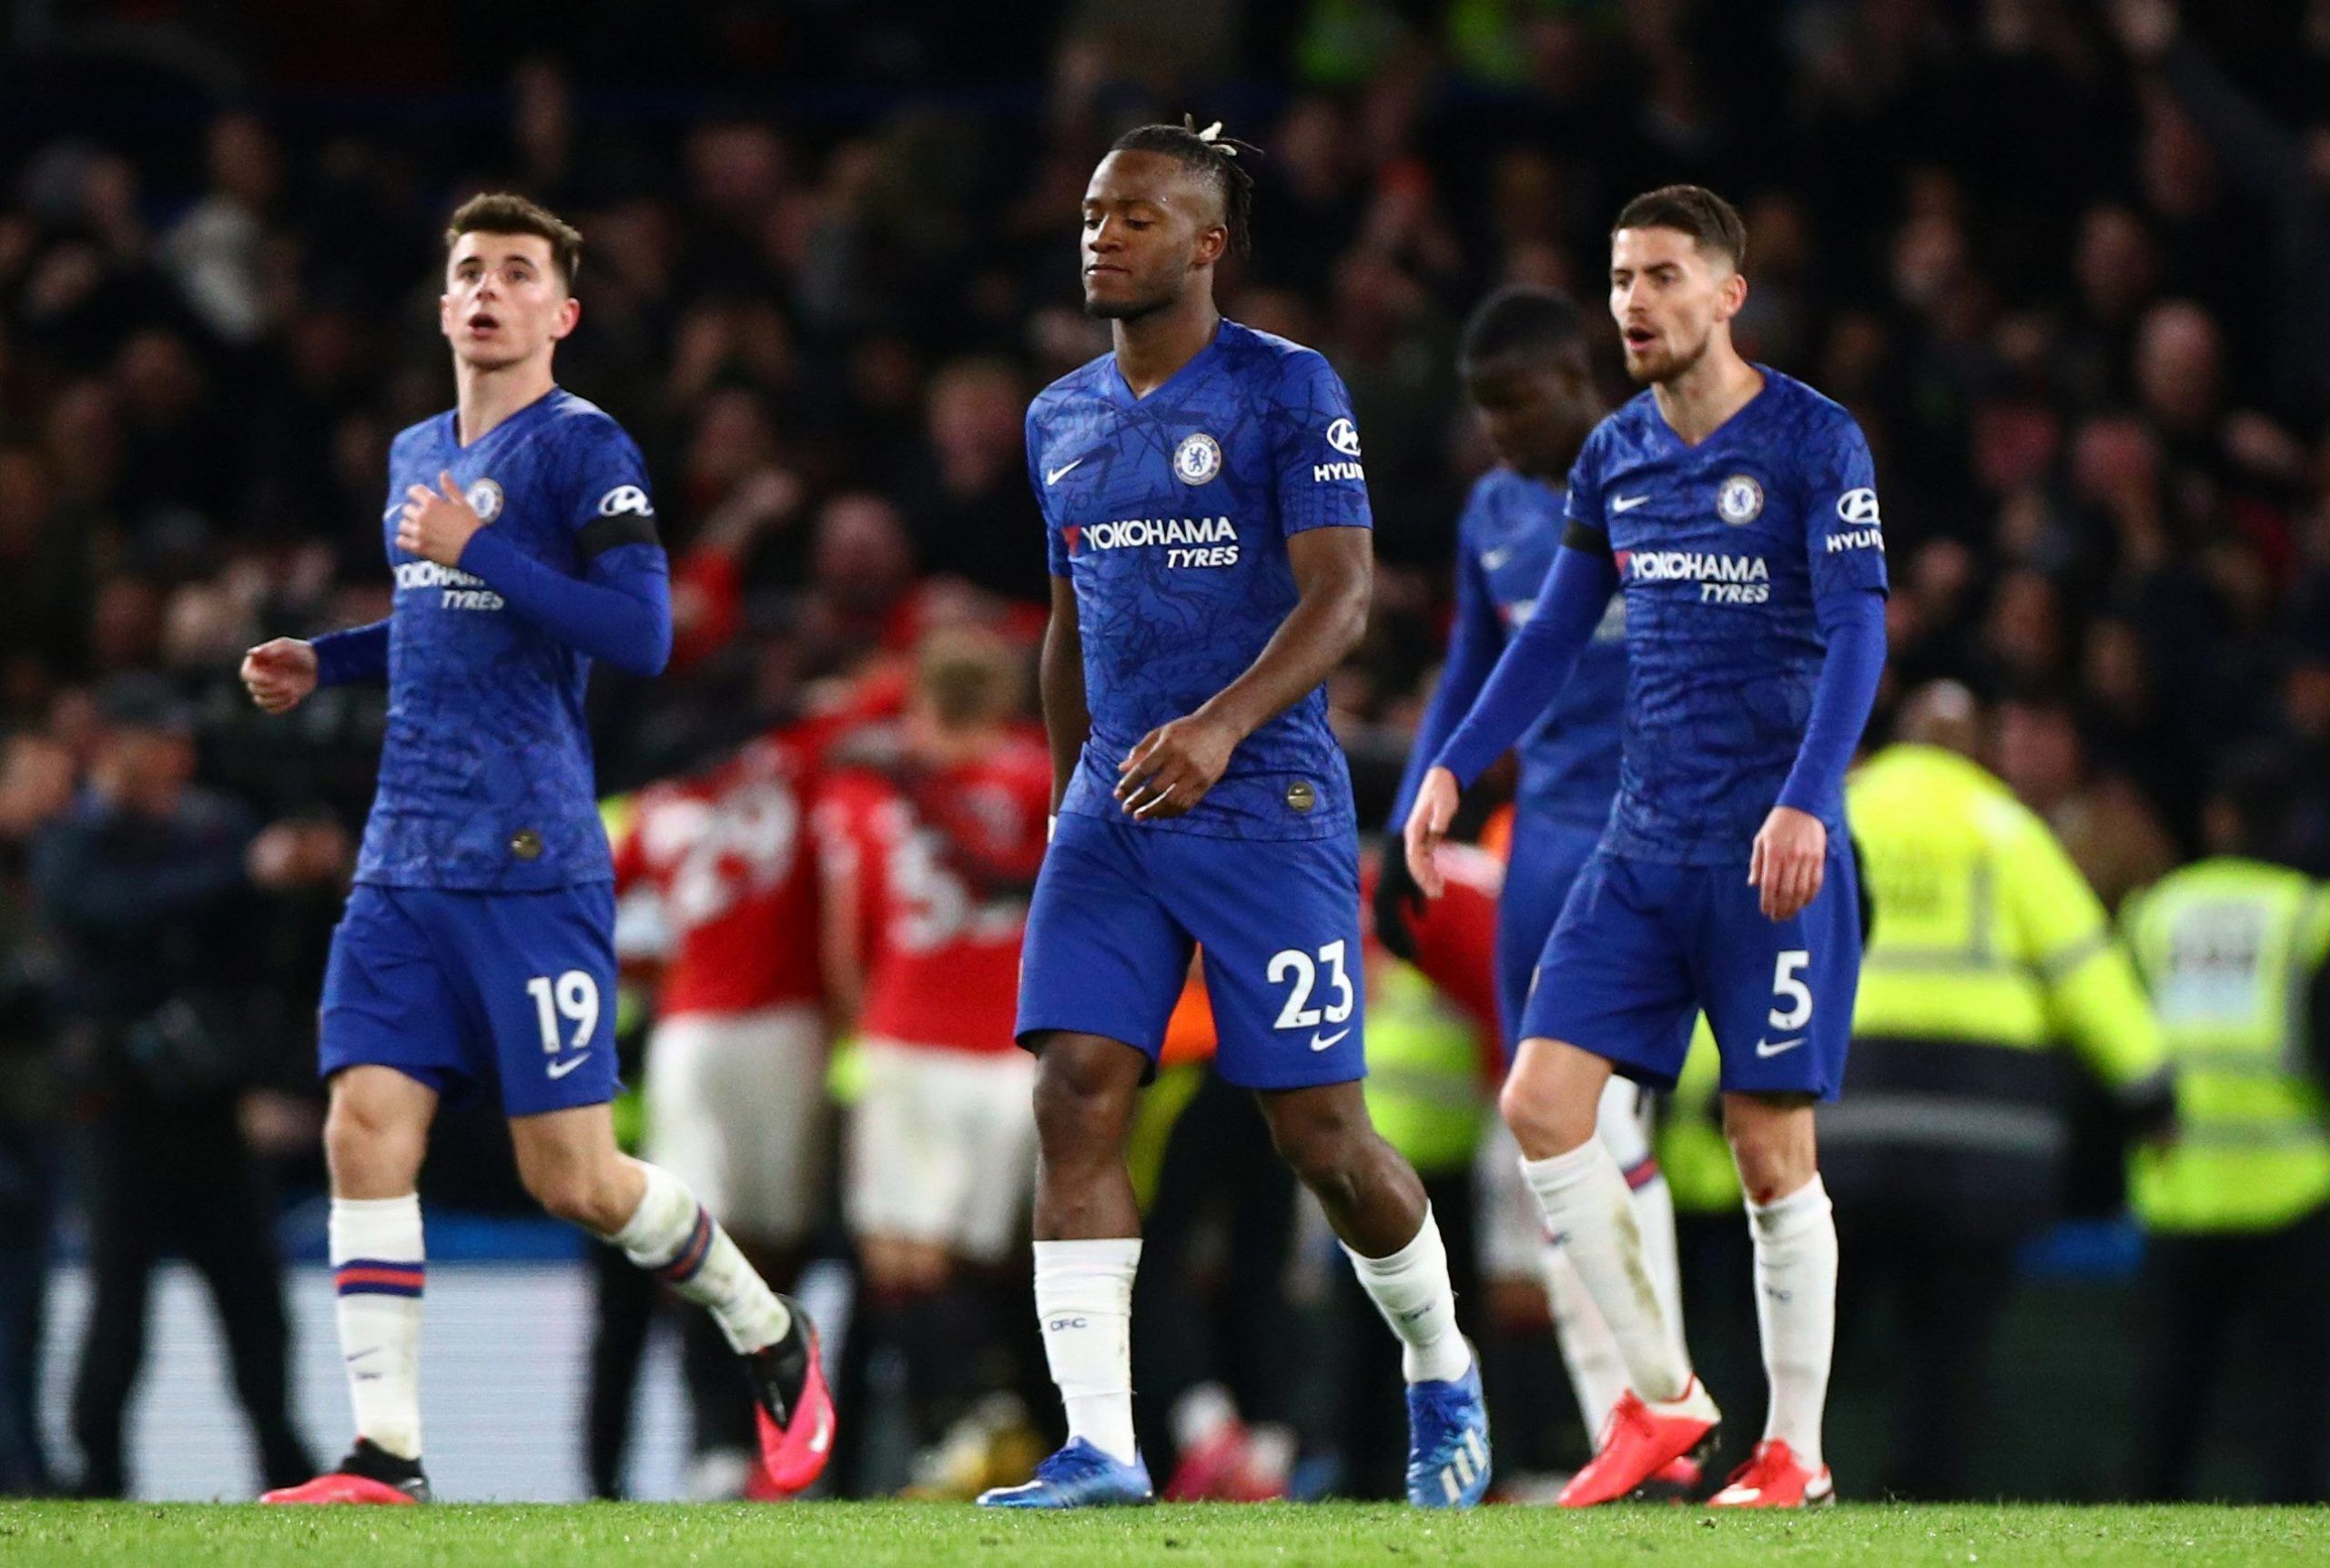 Live Stream Tv Channel Kick Off Time And Team News For Premier League Derby The Sun Chelsea Vs Tottenham Premier League Tv Channel